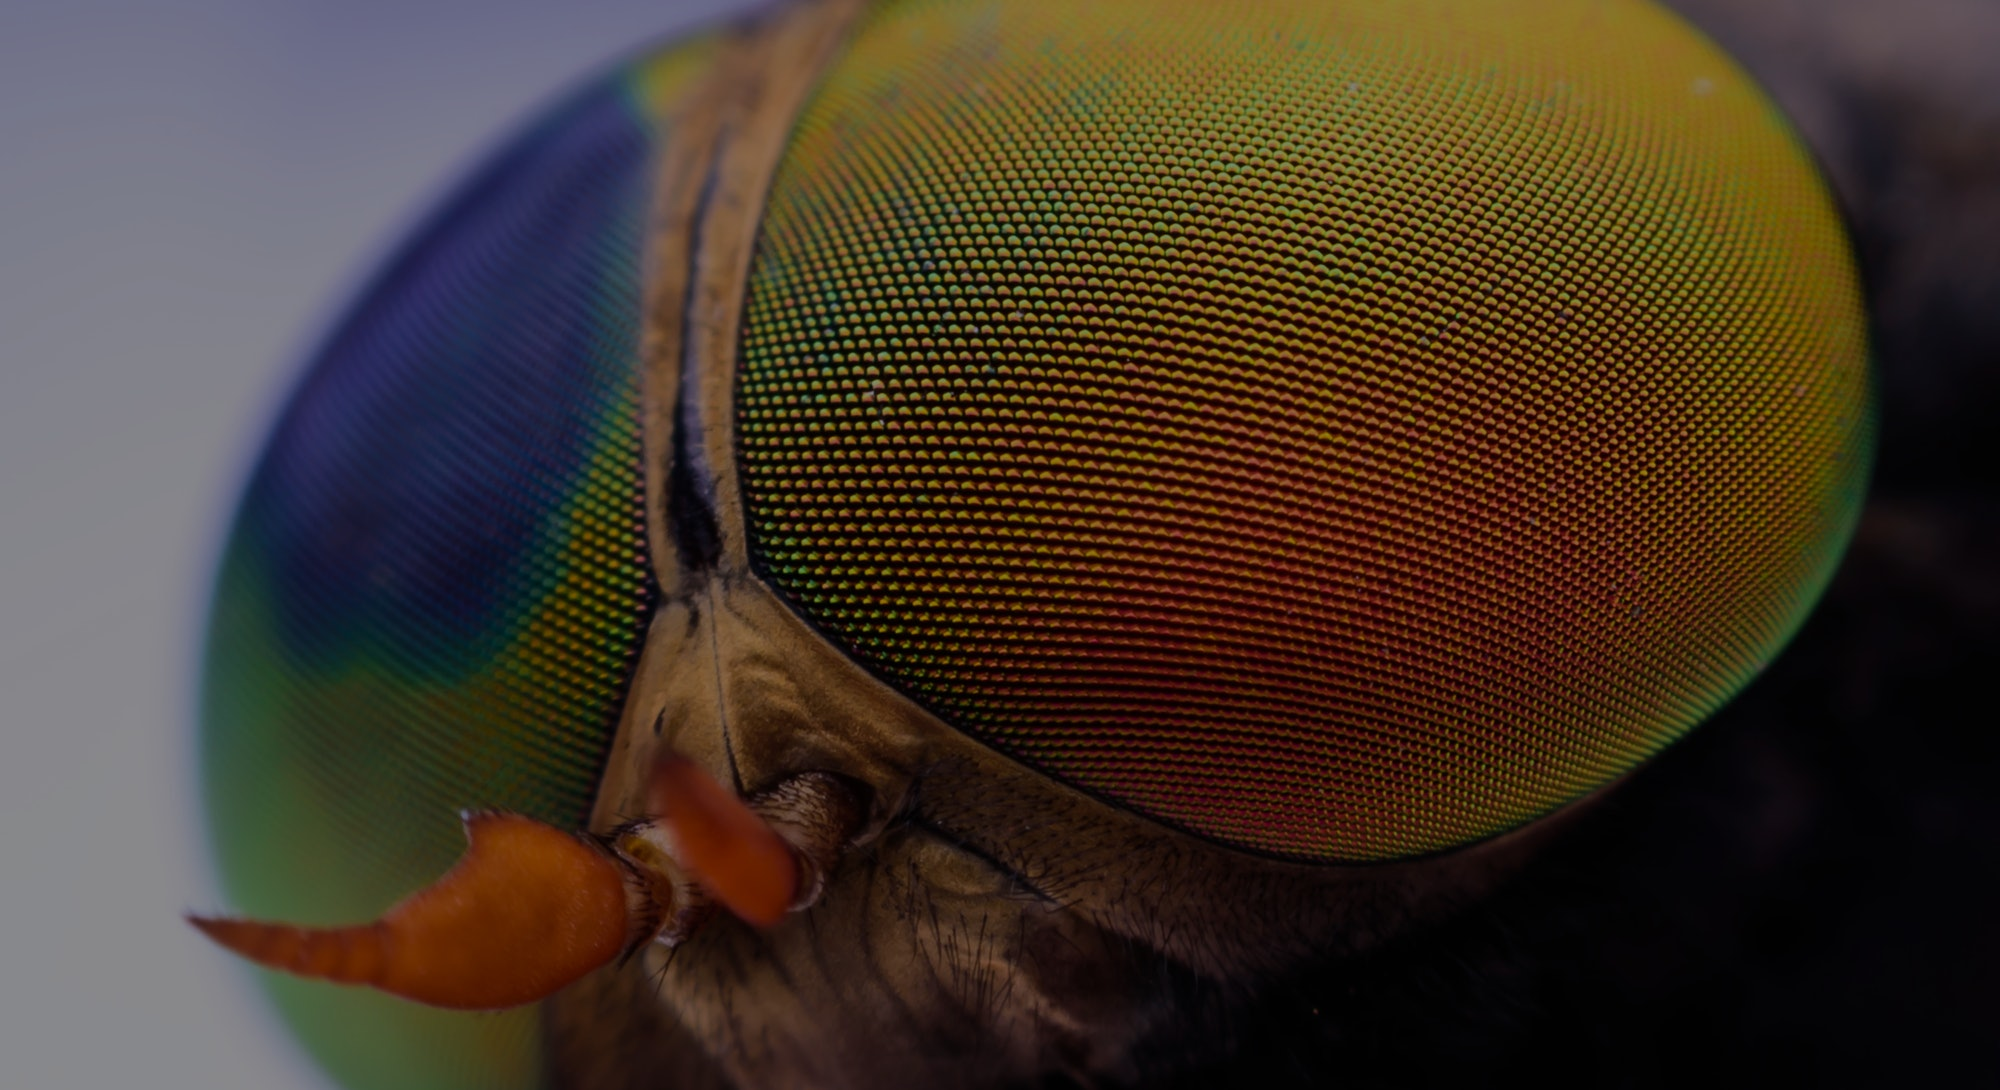 Macro sharp and detailed fly compound eye surface.